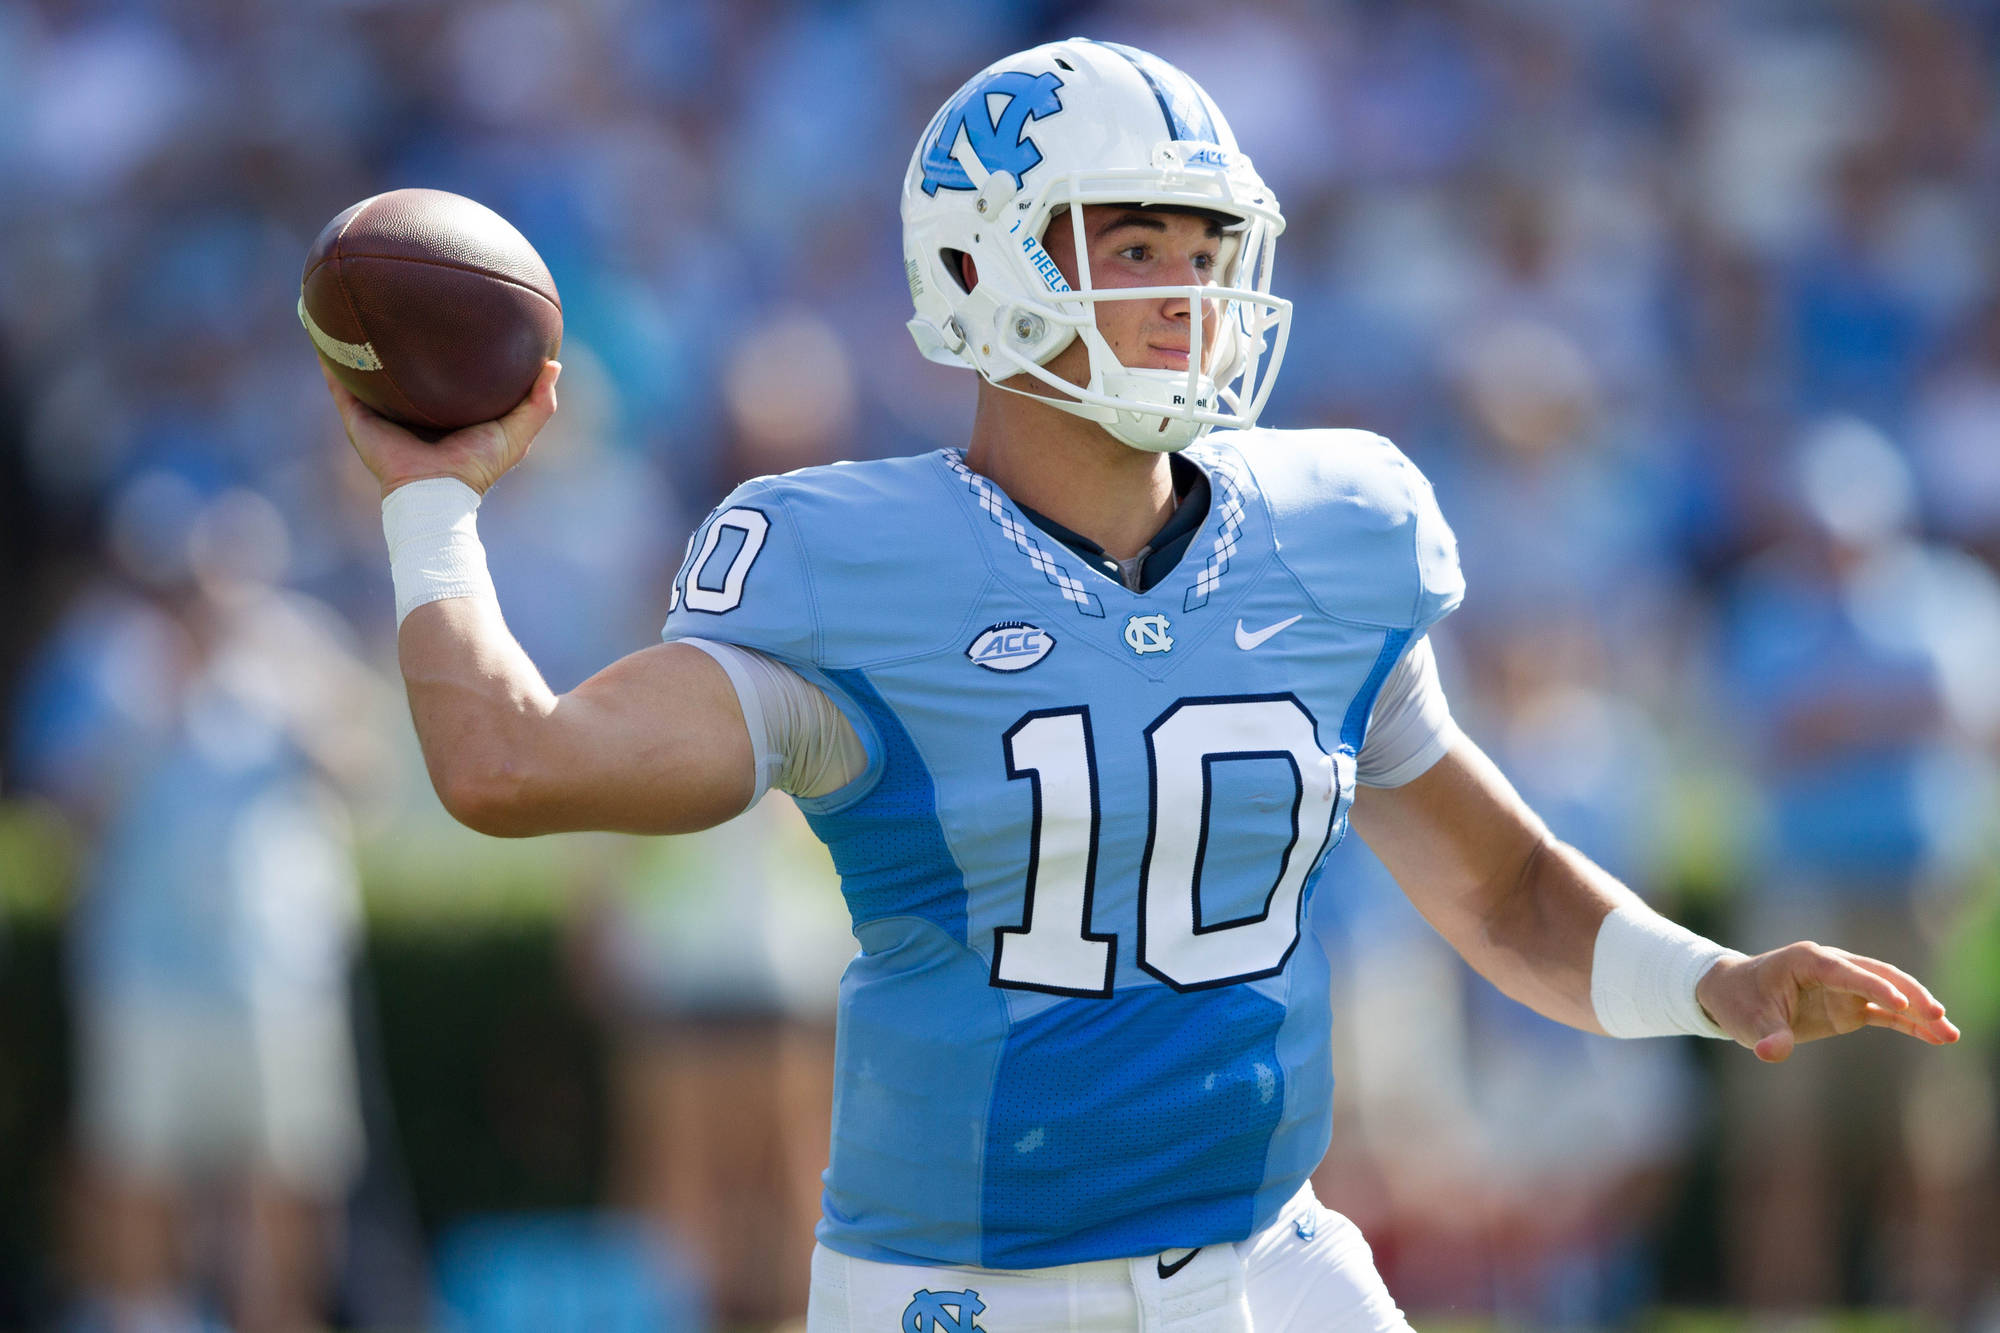 Mitch Trubisky Leaving UNC for NFL -- Is He Making the Wrong Choice?